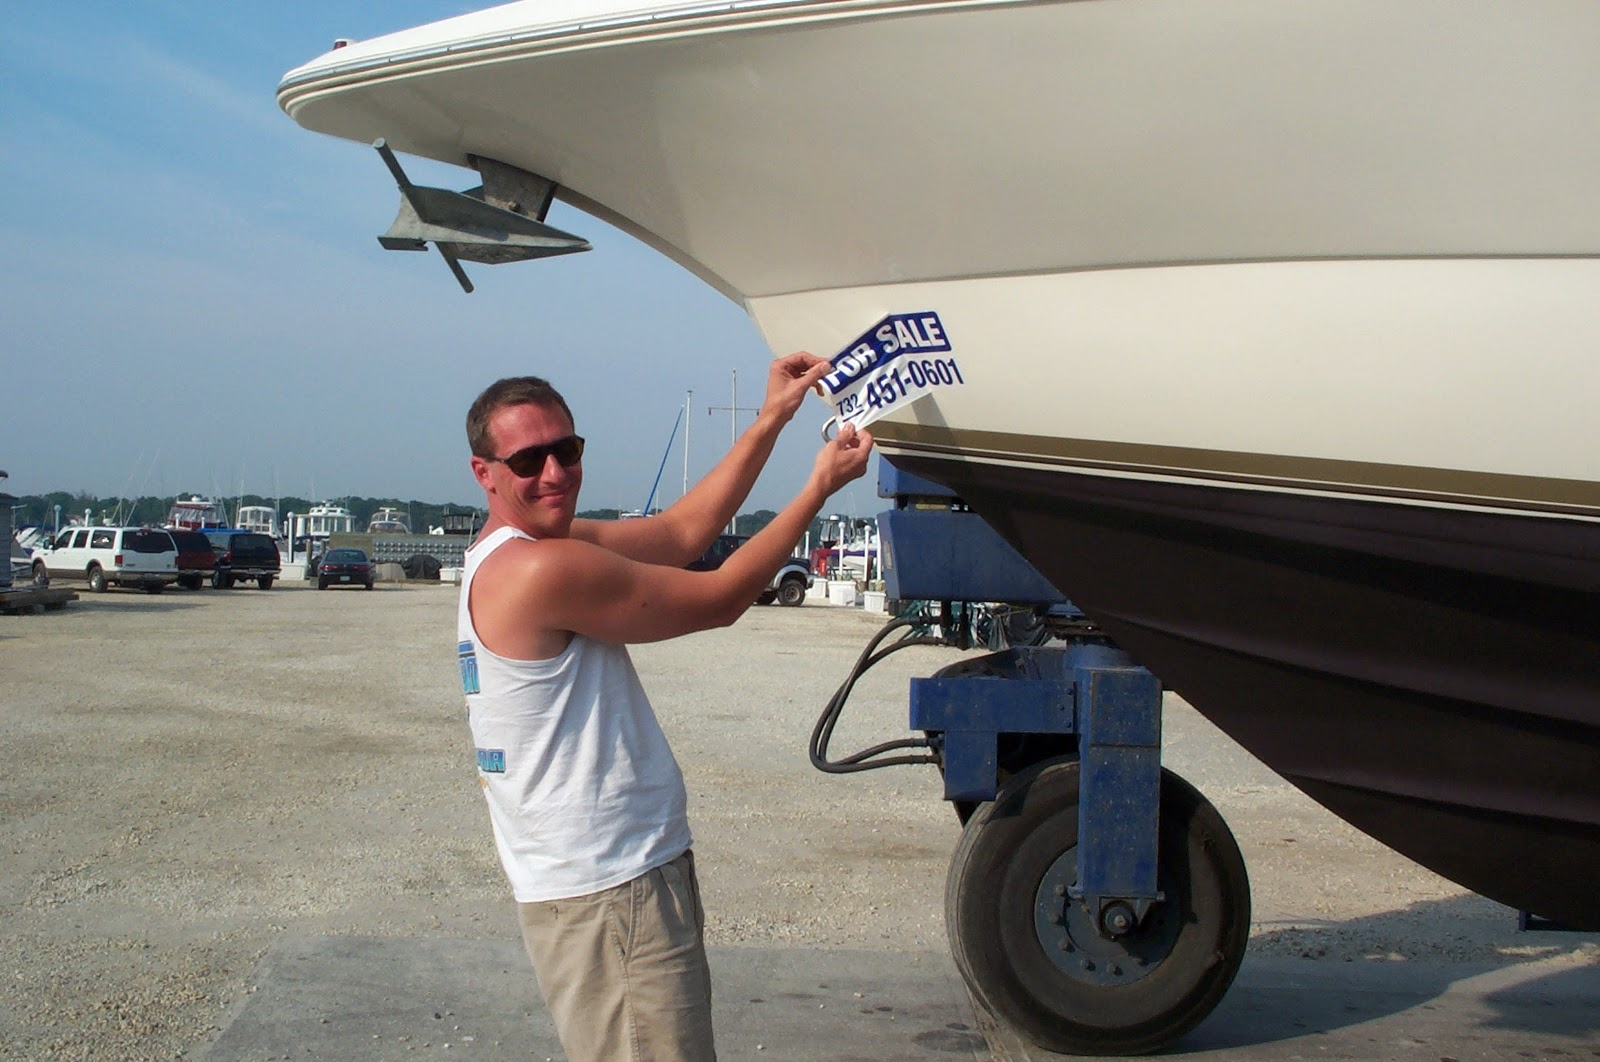 boater life